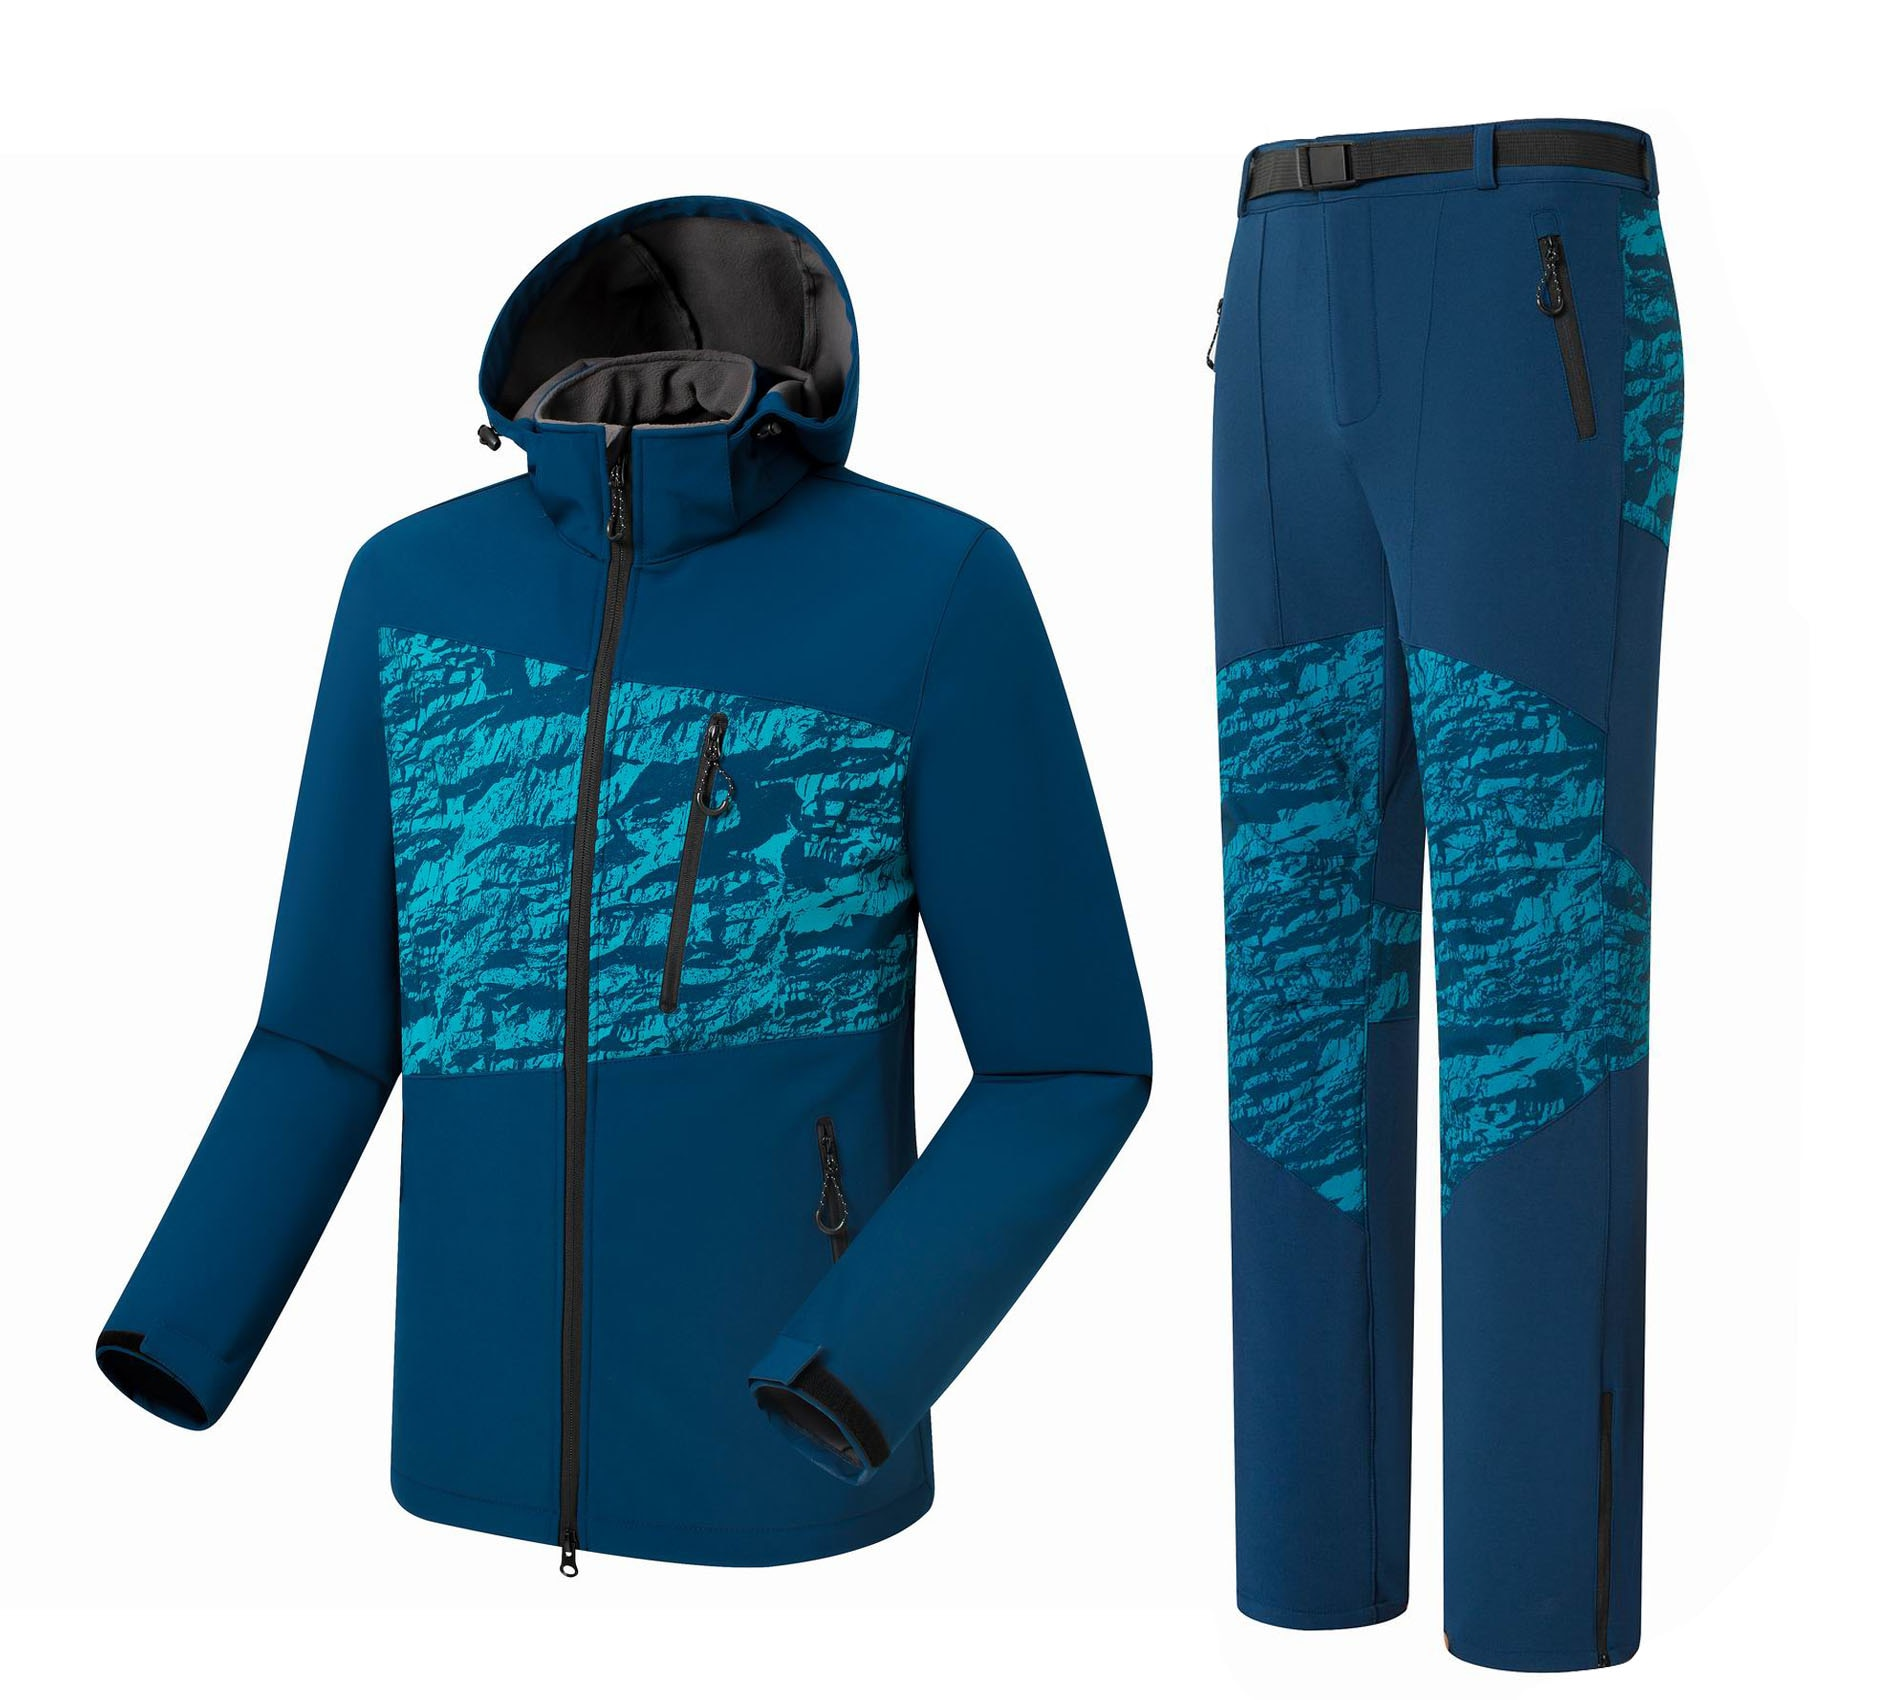 Men Hiking Jacket Pant Softshell Fleece Suit Windproof Water Repellent Outdoor Clothing Sets Mountain Camp